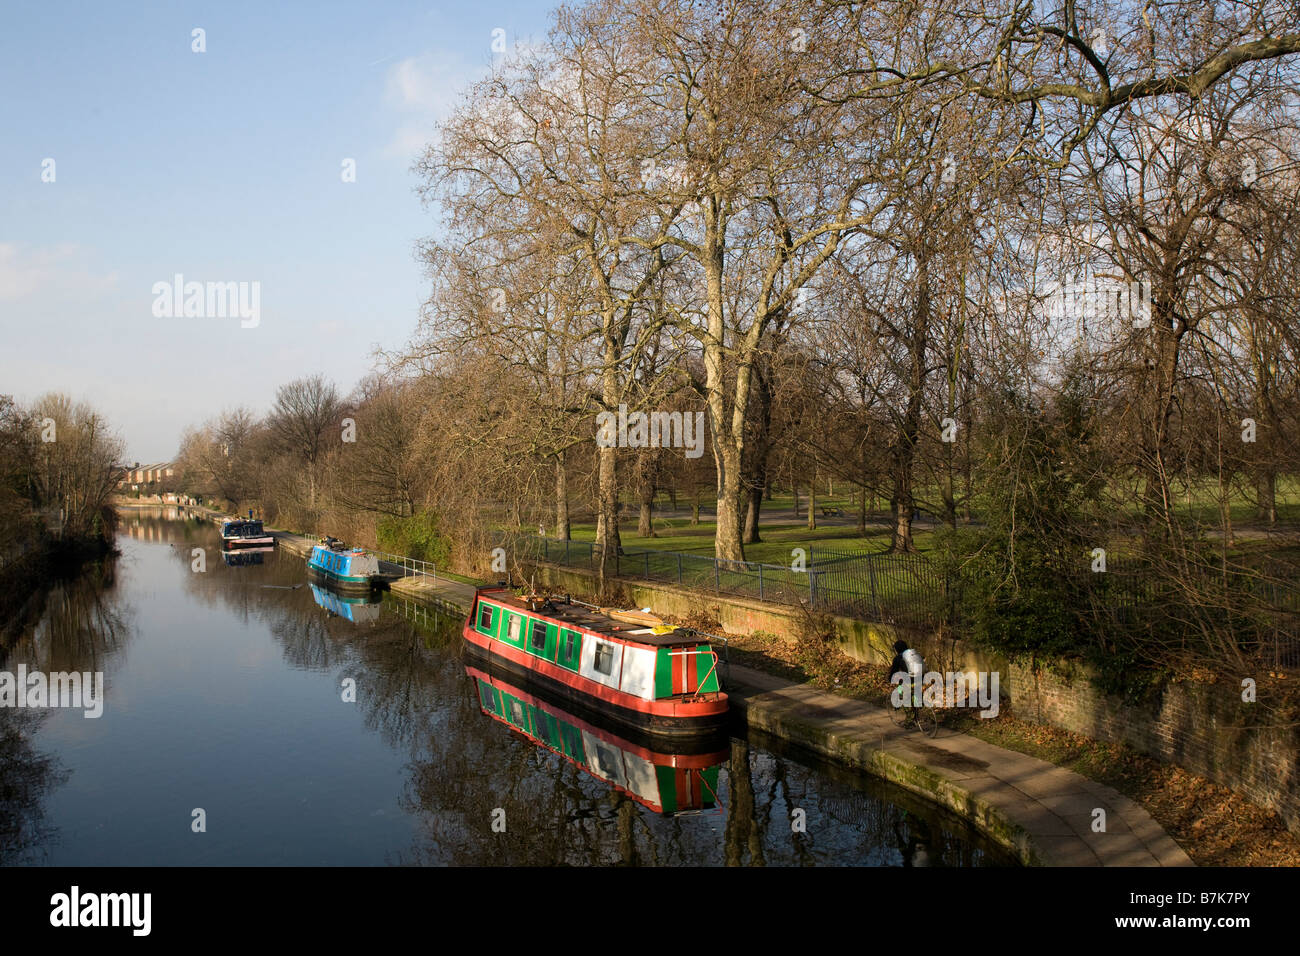 Narrow boats on the Hertford Union Canal by Victoria Park East London GB UK - Stock Image